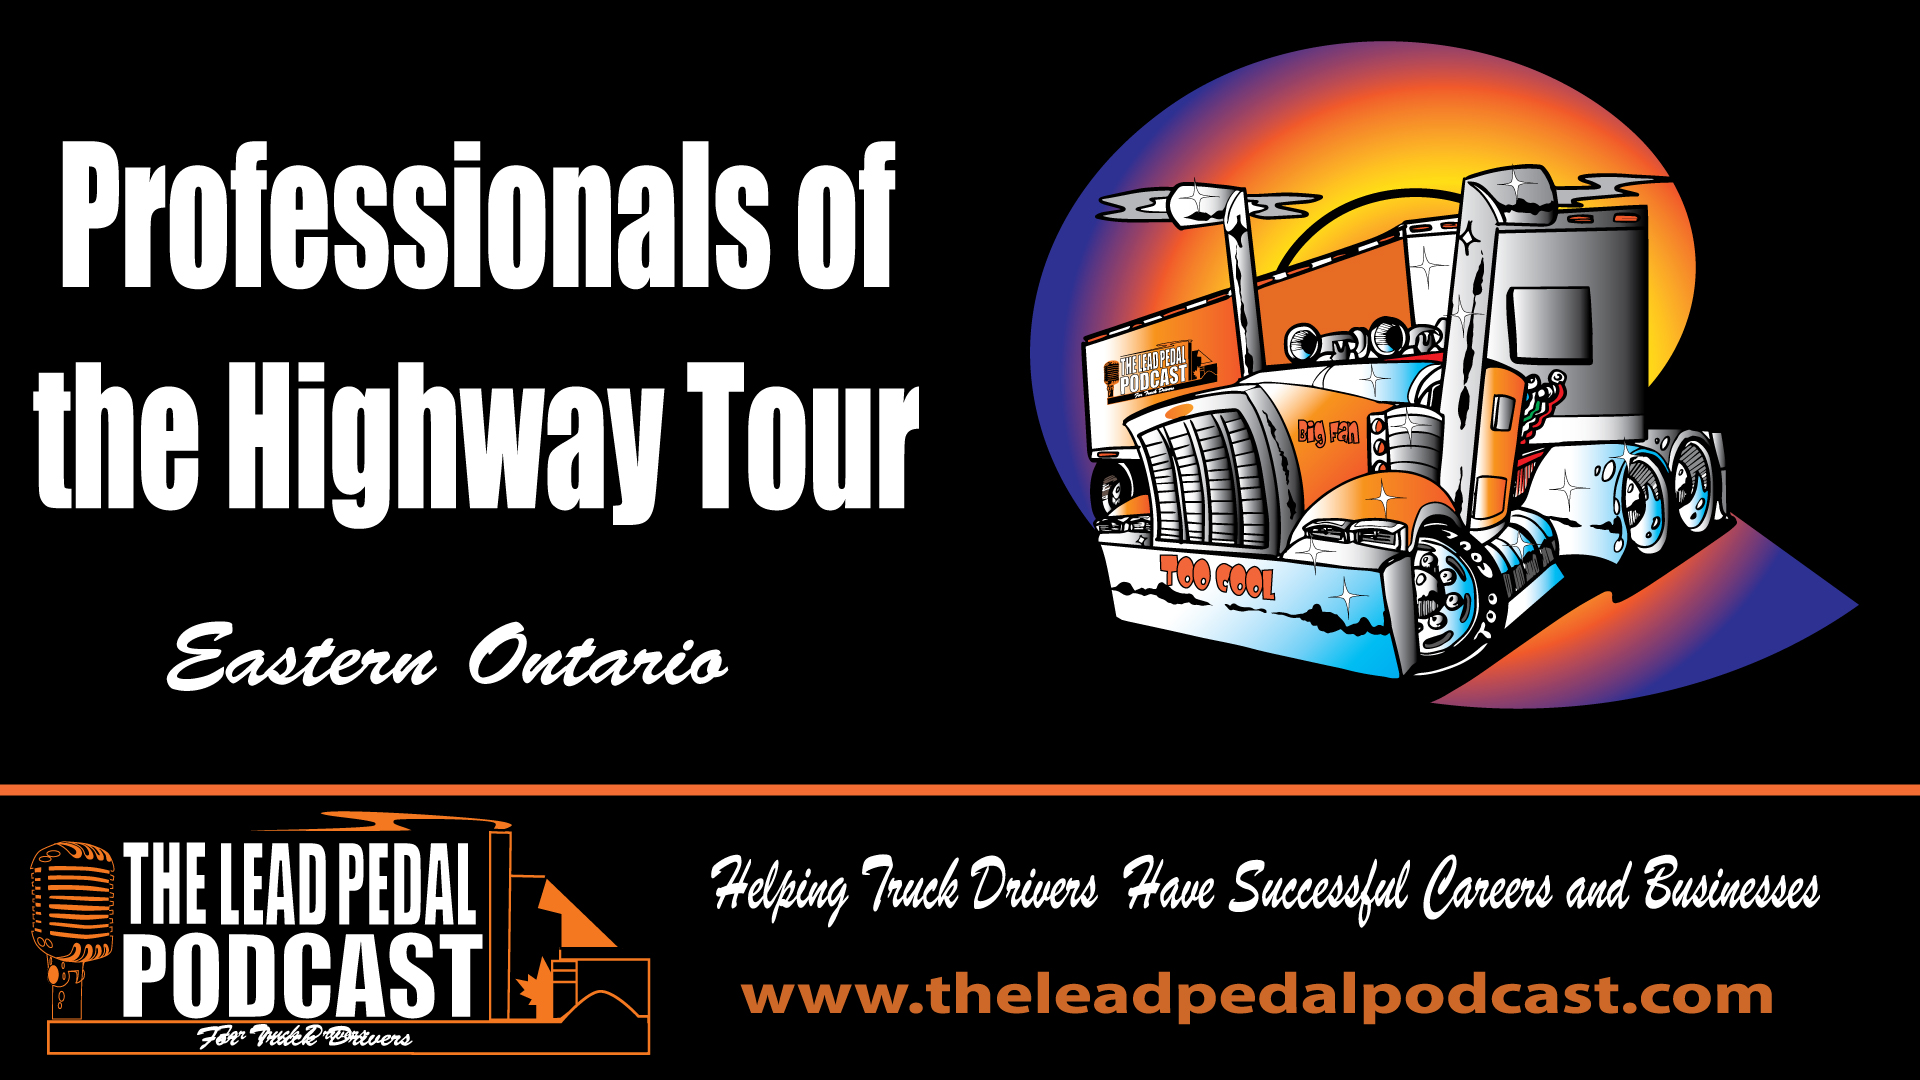 Professionals of the Highway Tour